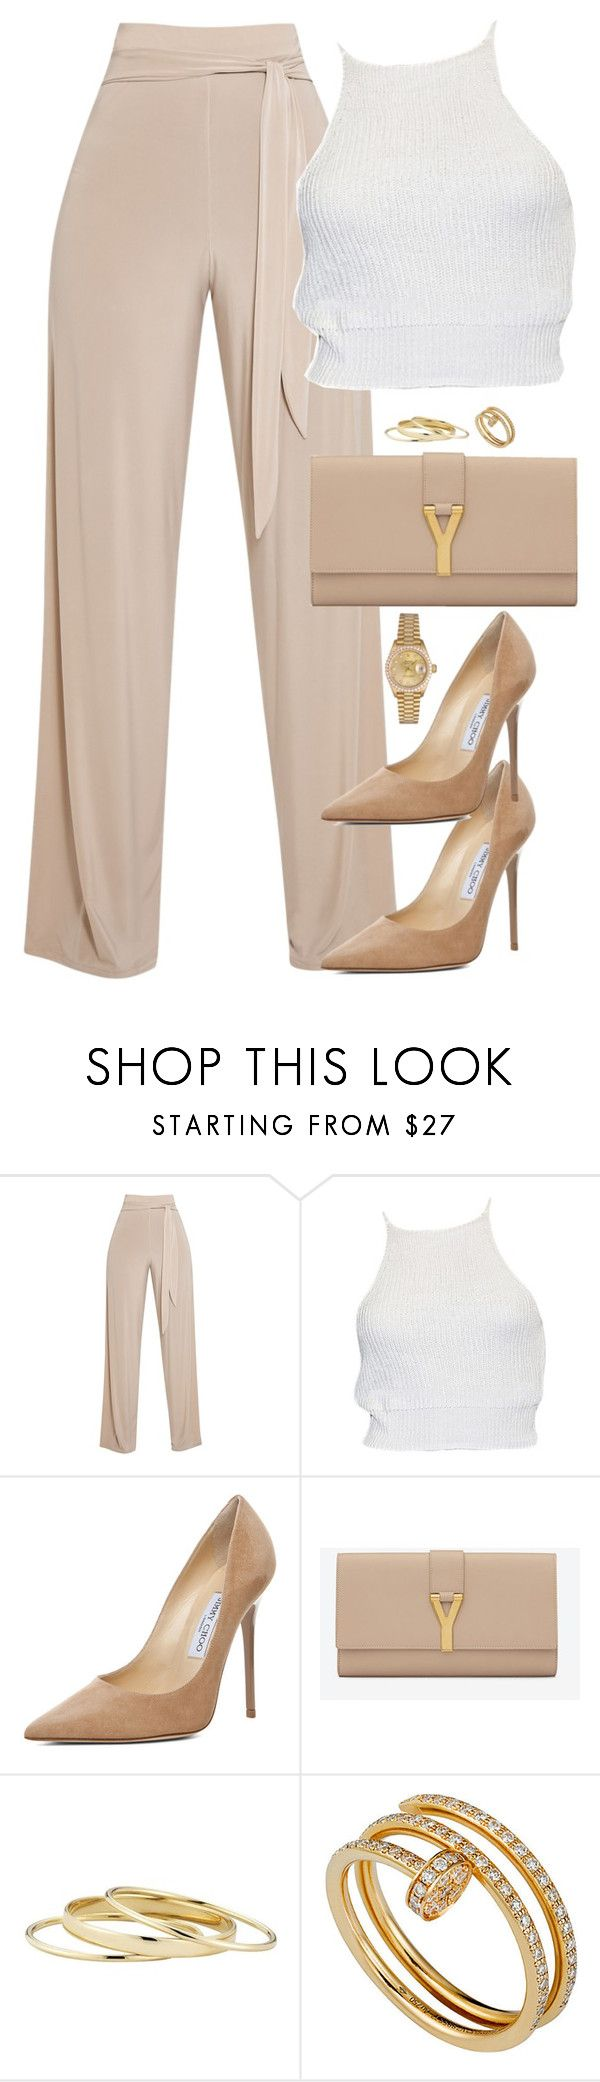 """Unbenannt #2099"" by luckylynn-cdii ❤ liked on Polyvore featuring Jimmy Choo, Yves Saint Laurent, Minor Obsessions, Cartier and Rolex"